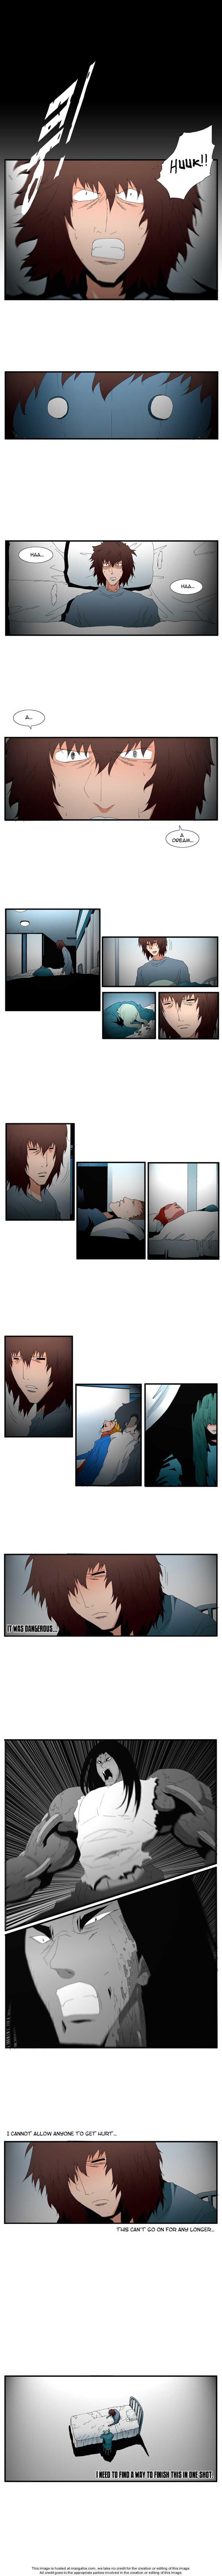 Trace 41 Page 2